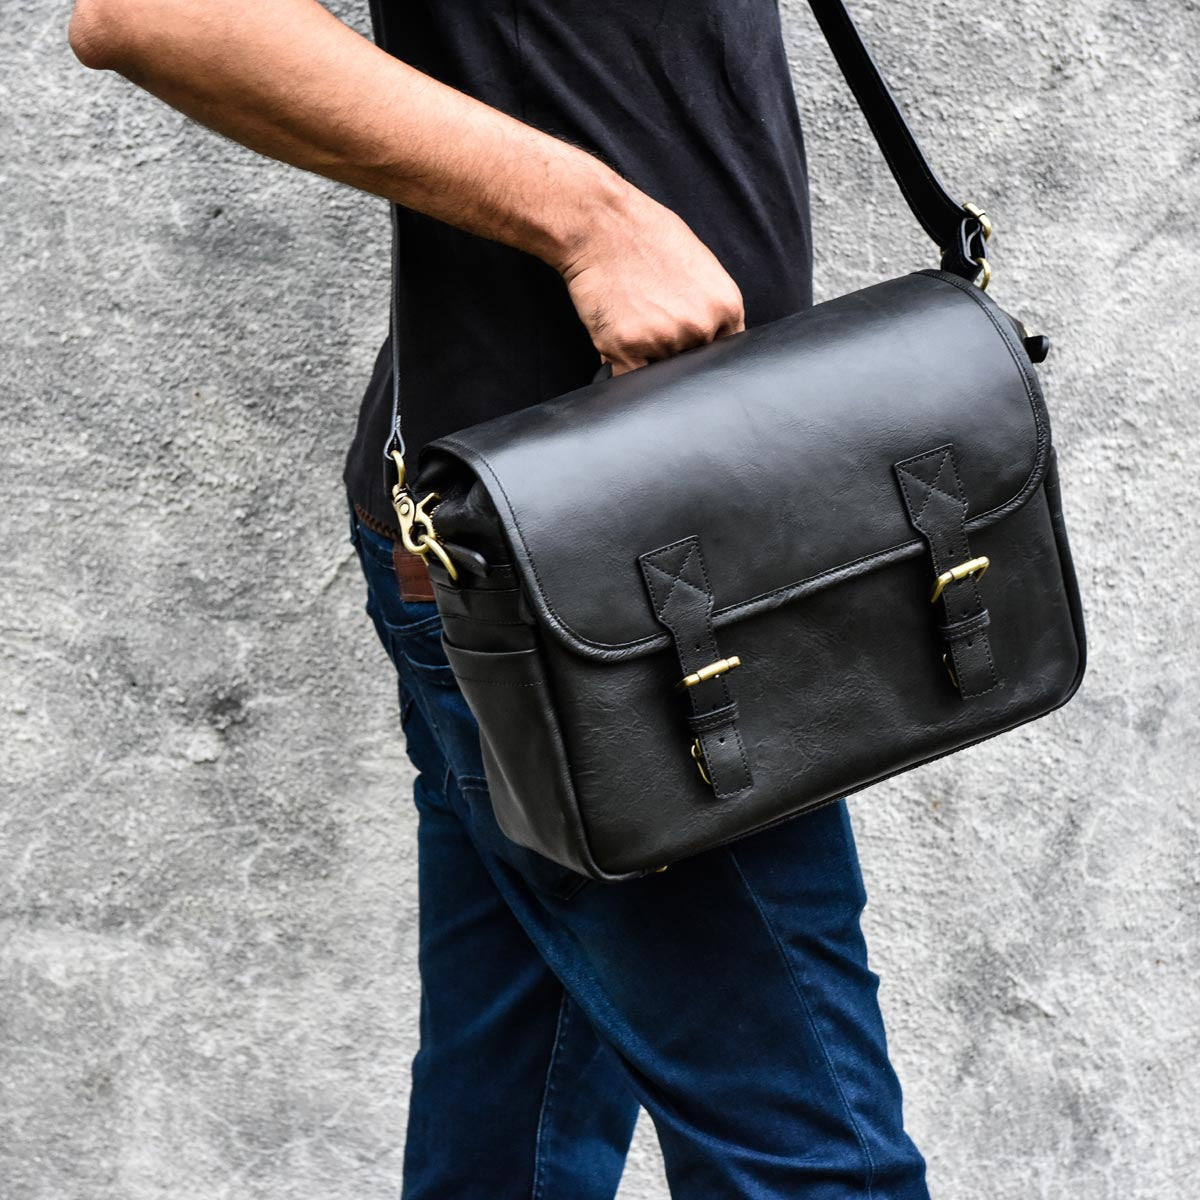 150c7b1f9f4 ... leather by Blackforest · Luxury camera bags at affordable price, Rimo  I, stylish camera messenger bag in black ...